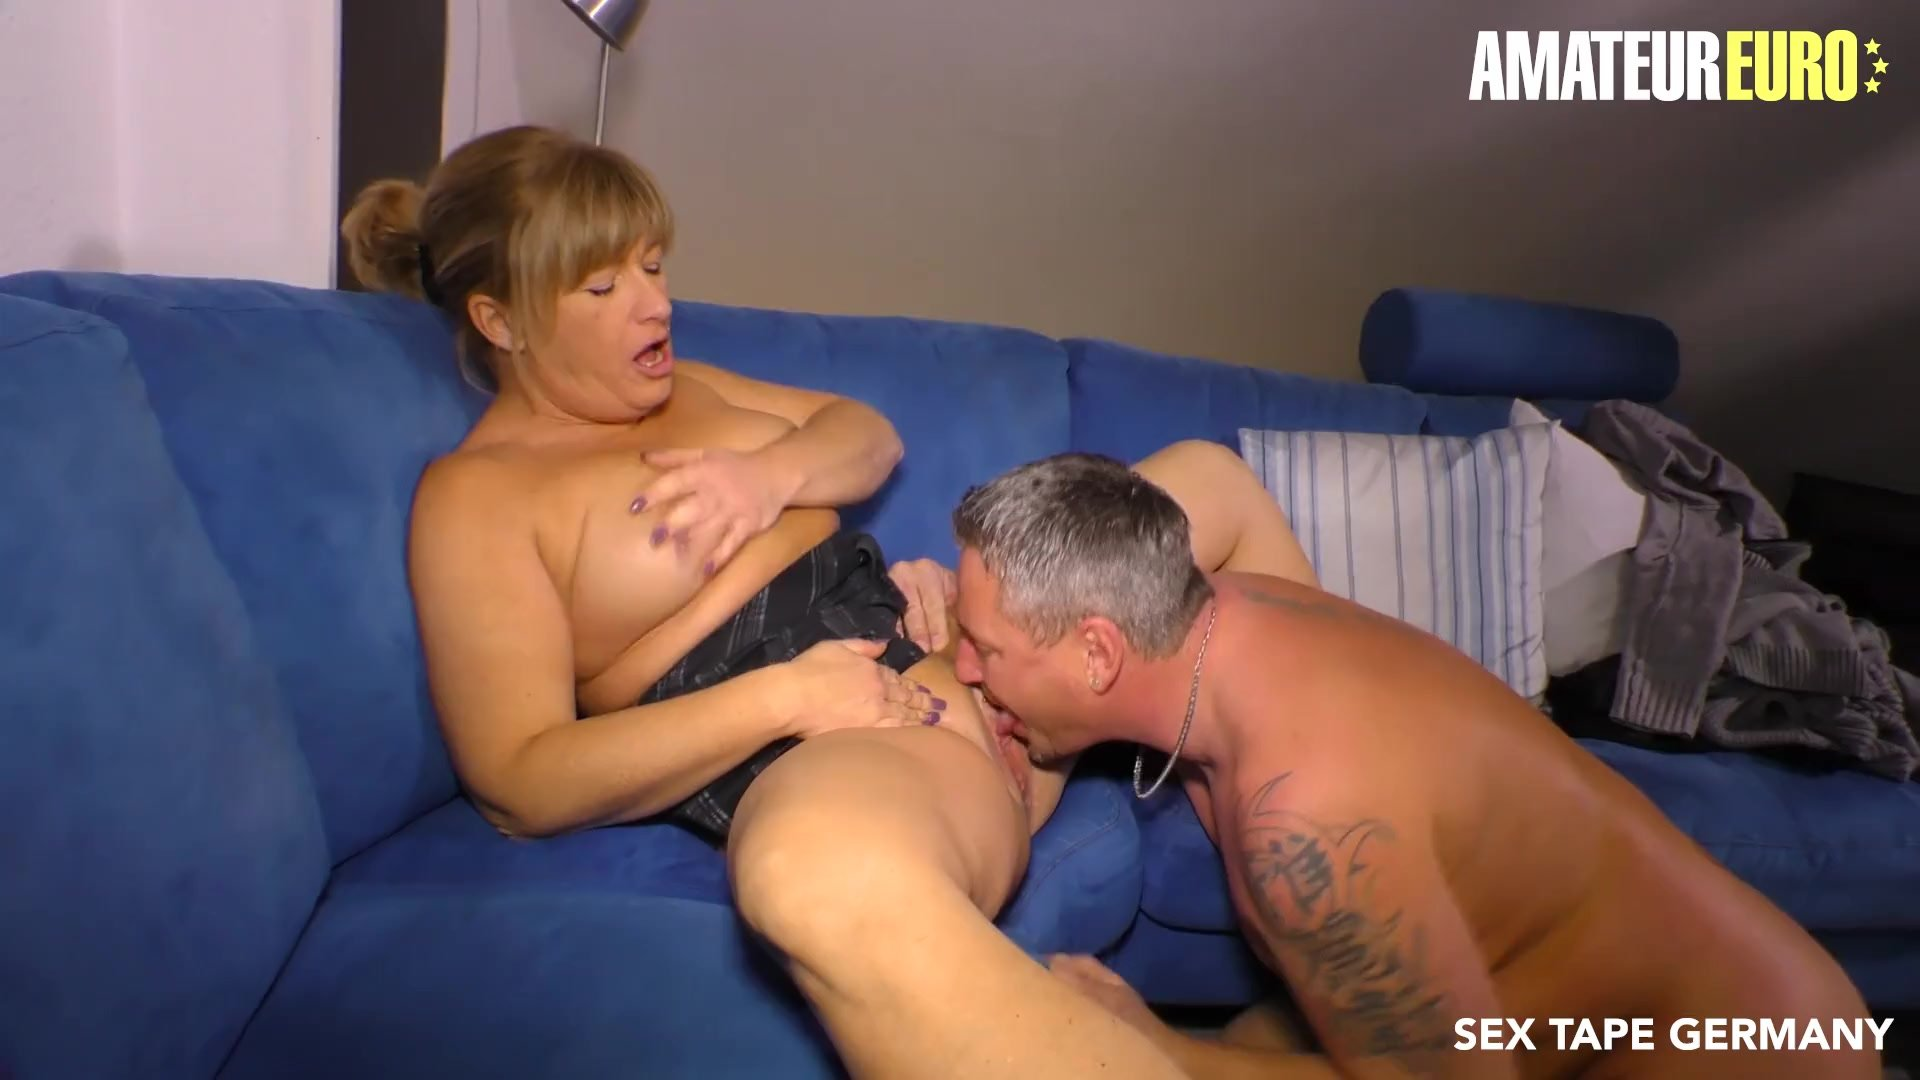 AmateurEuro - Chubby Amateur German Wife Squirts In Her First SEX TAPE